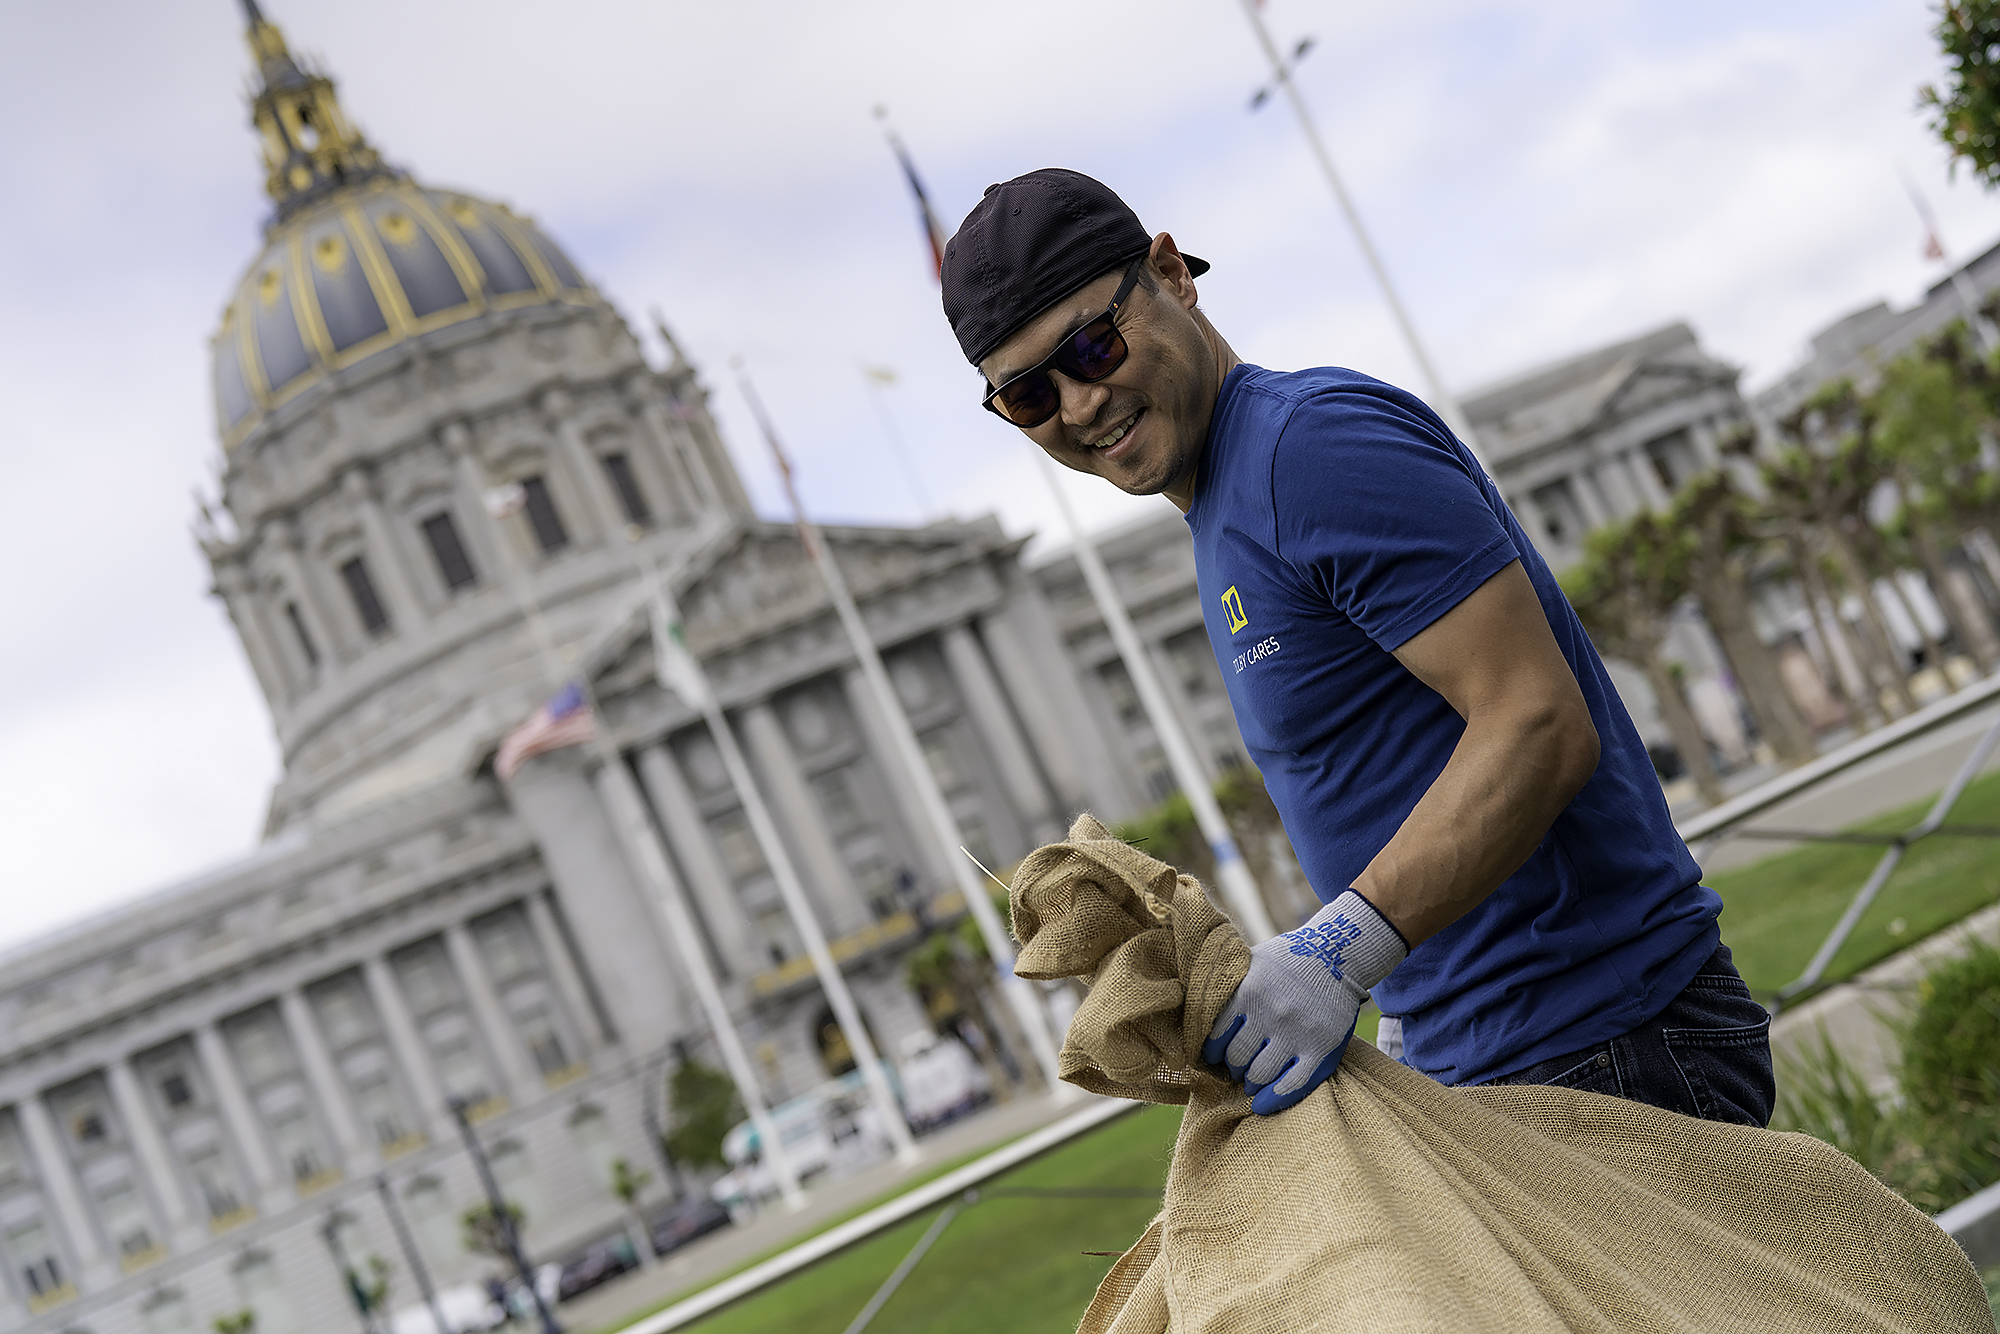 Gardening at SF Civic Center Park at 2019 Dolby Cares Day